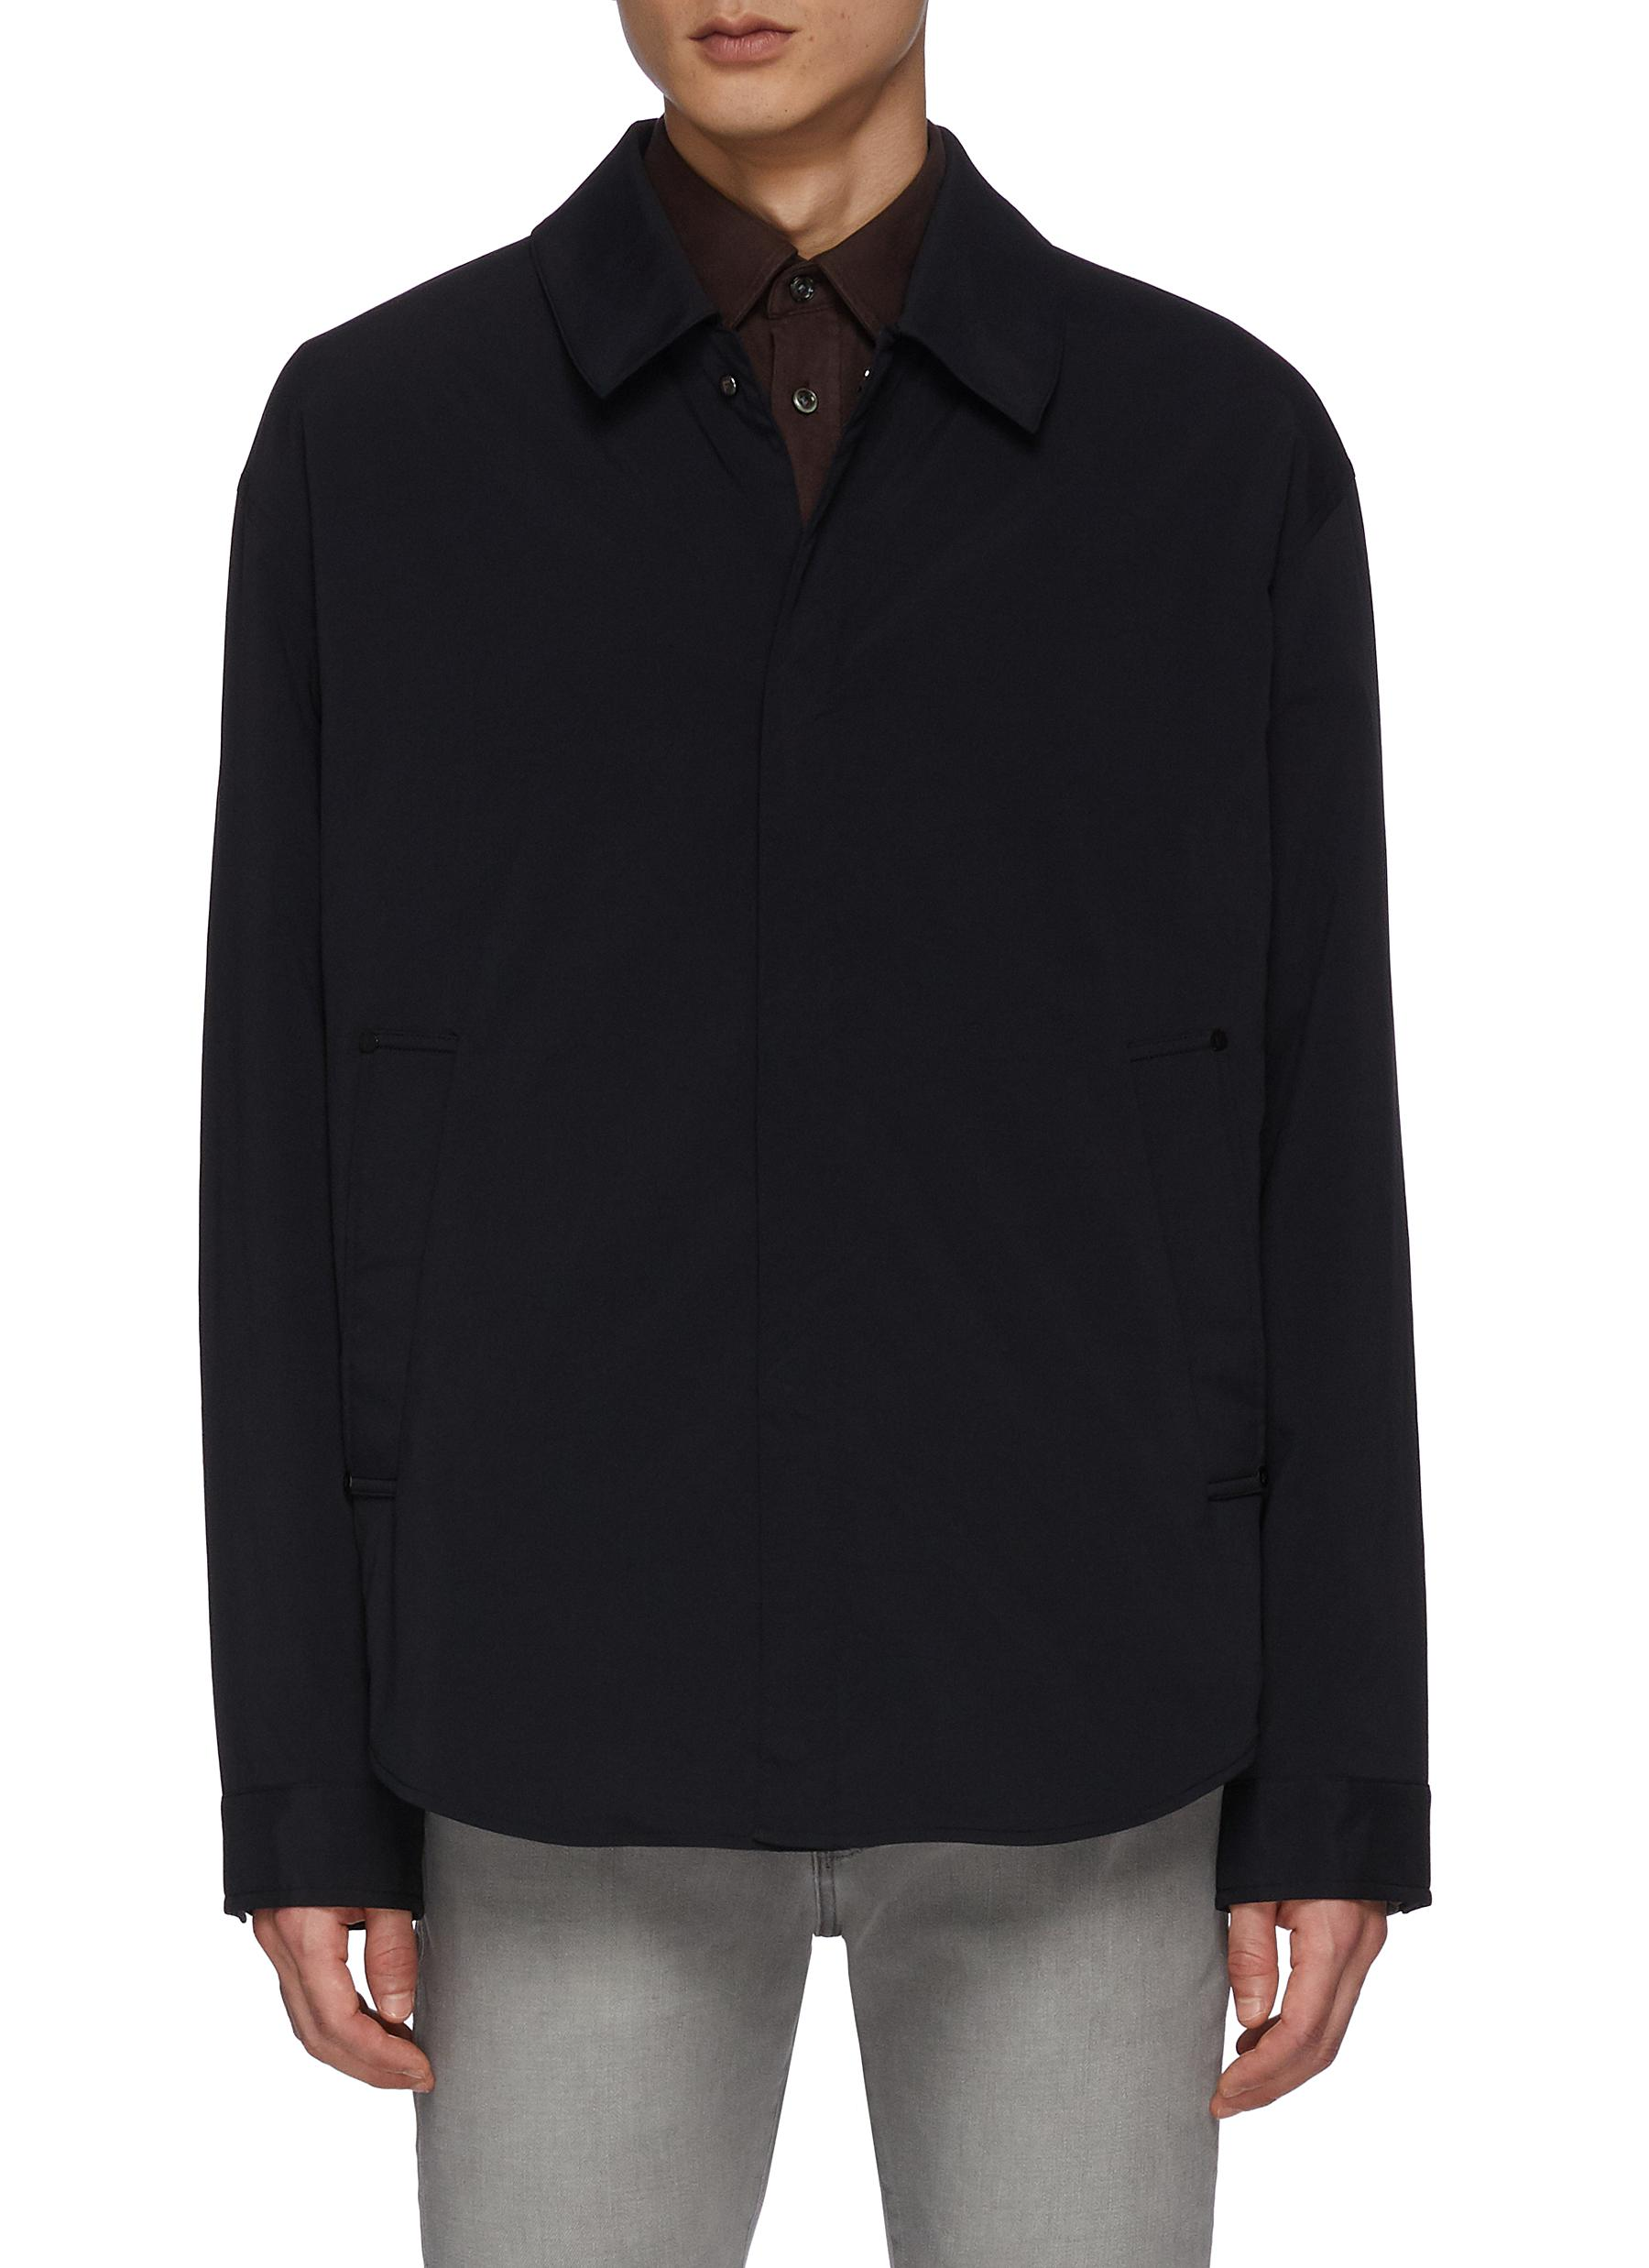 Concealed Closure Technical Overshirt